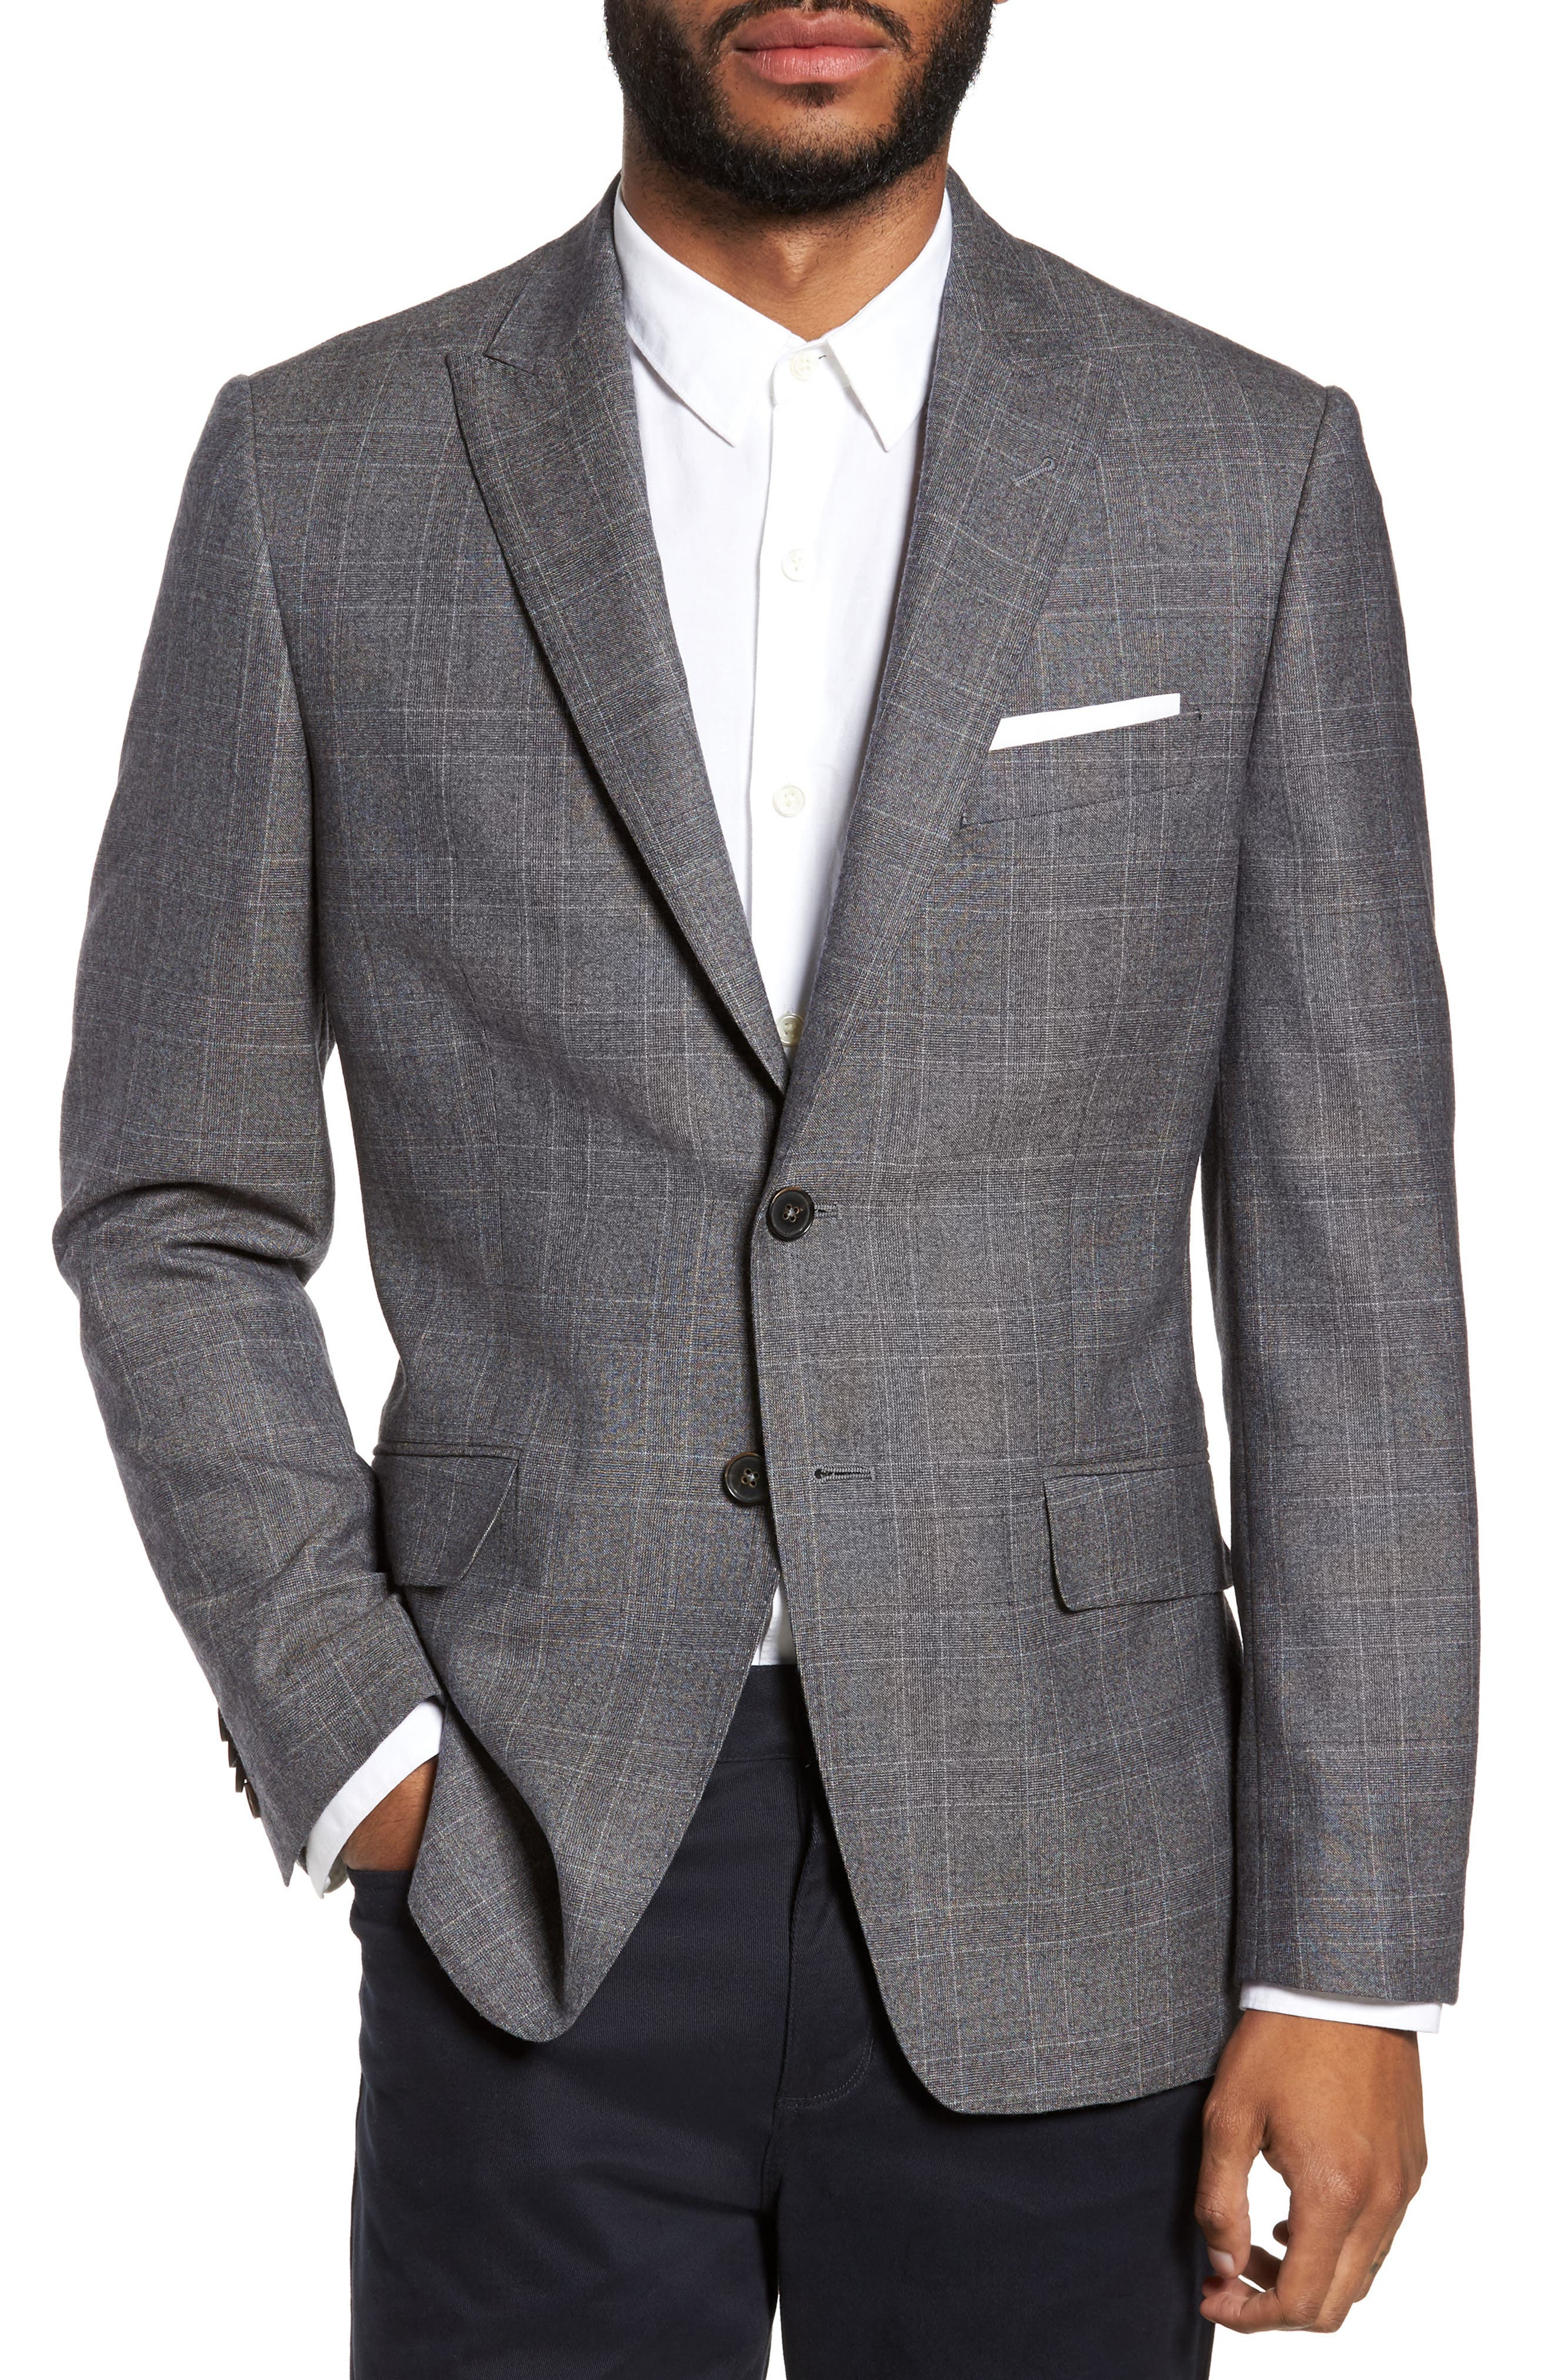 Gryning Trim Fit Plaid Wool Blend Sport Coat,                         Main,                         color, 066